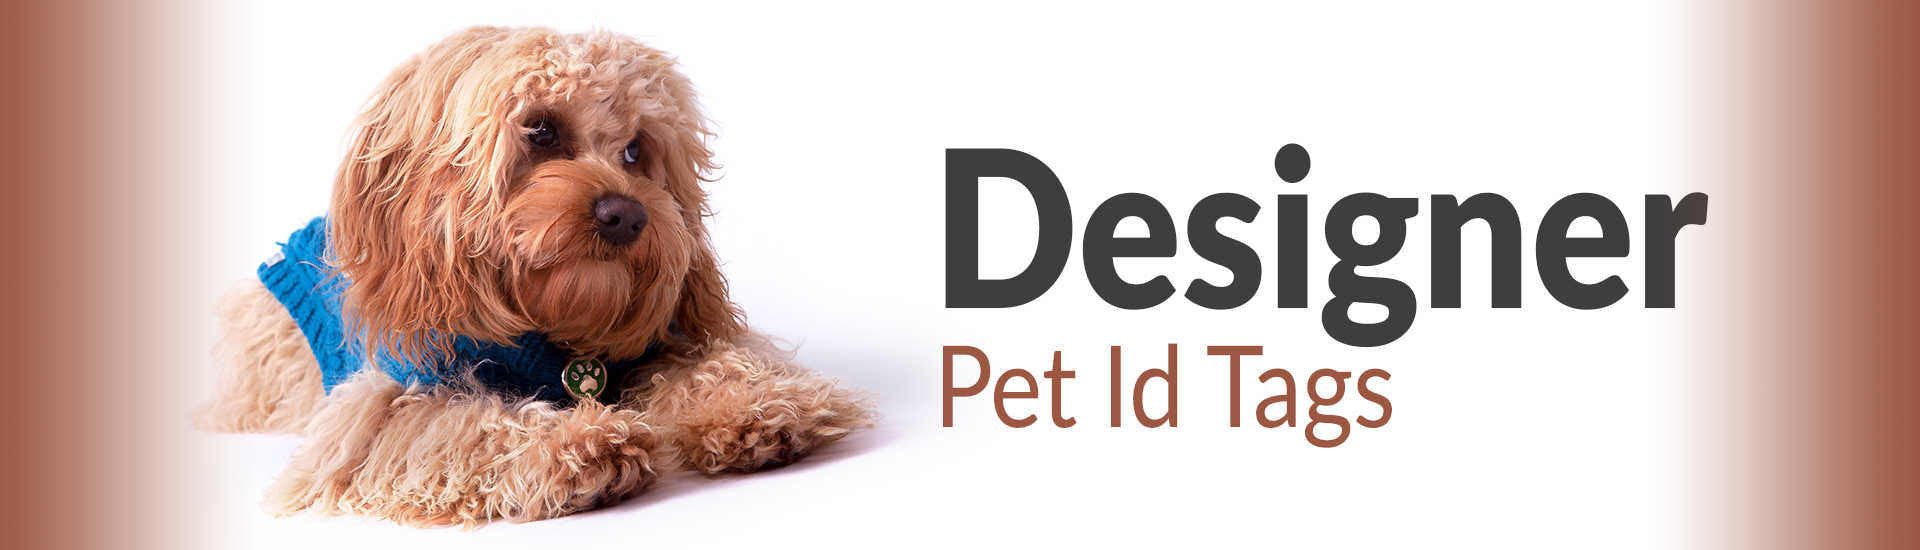 designer-dog-tags-pawprintpettags